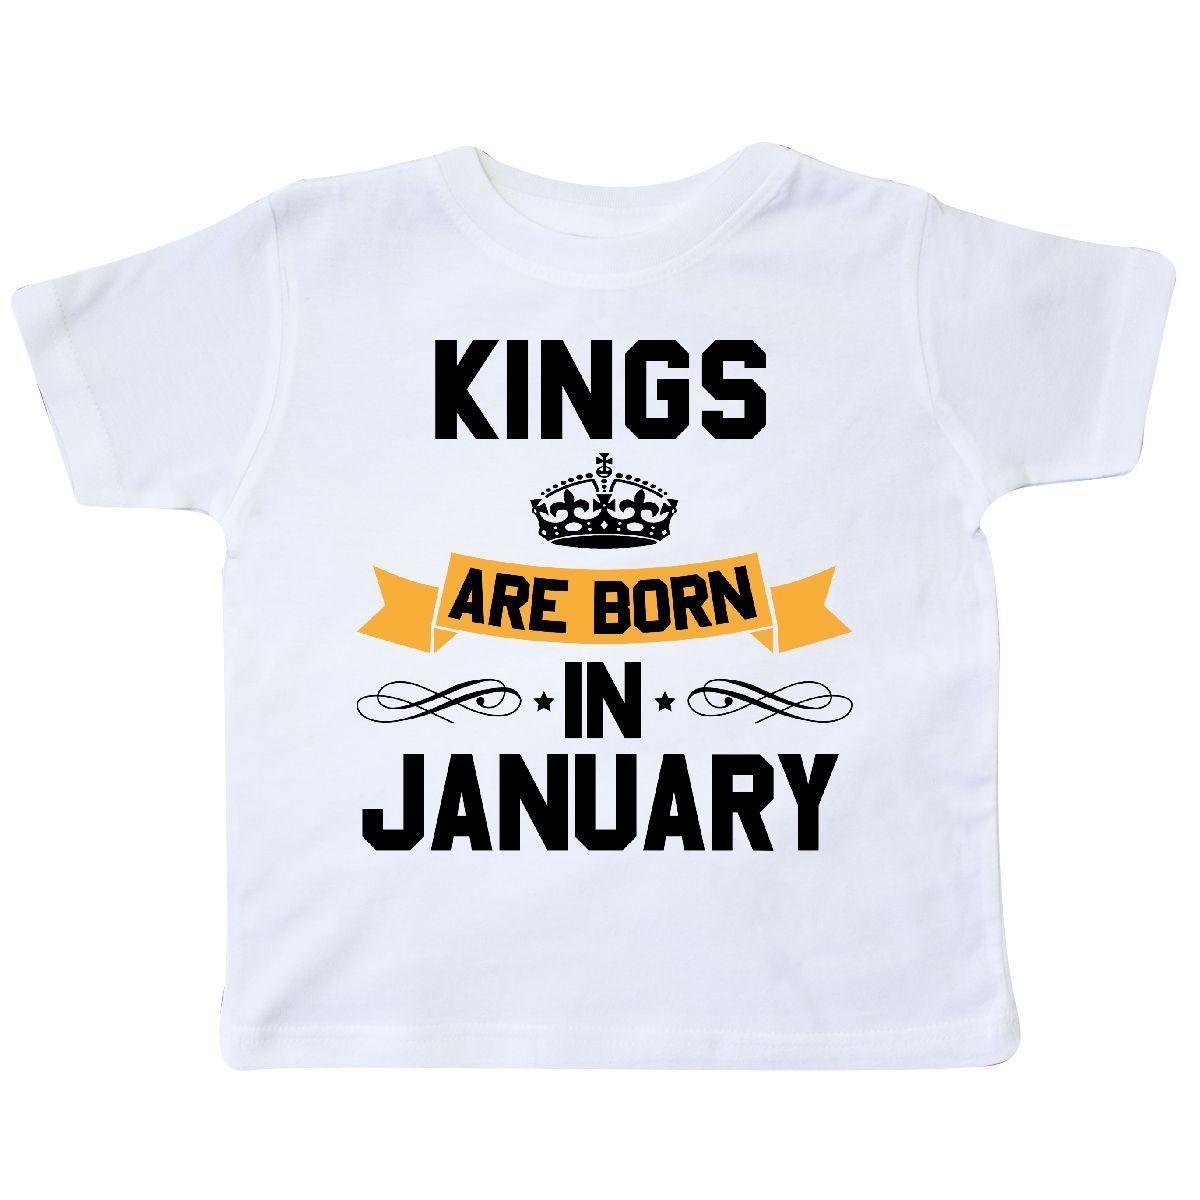 ba44abe8 Inktastic Kings Are Born In January Toddler T Shirt Birthdays Adult King  Month Nerd T Shirts Design Shirt From Foryouboutique, $11.01| DHgate.Com